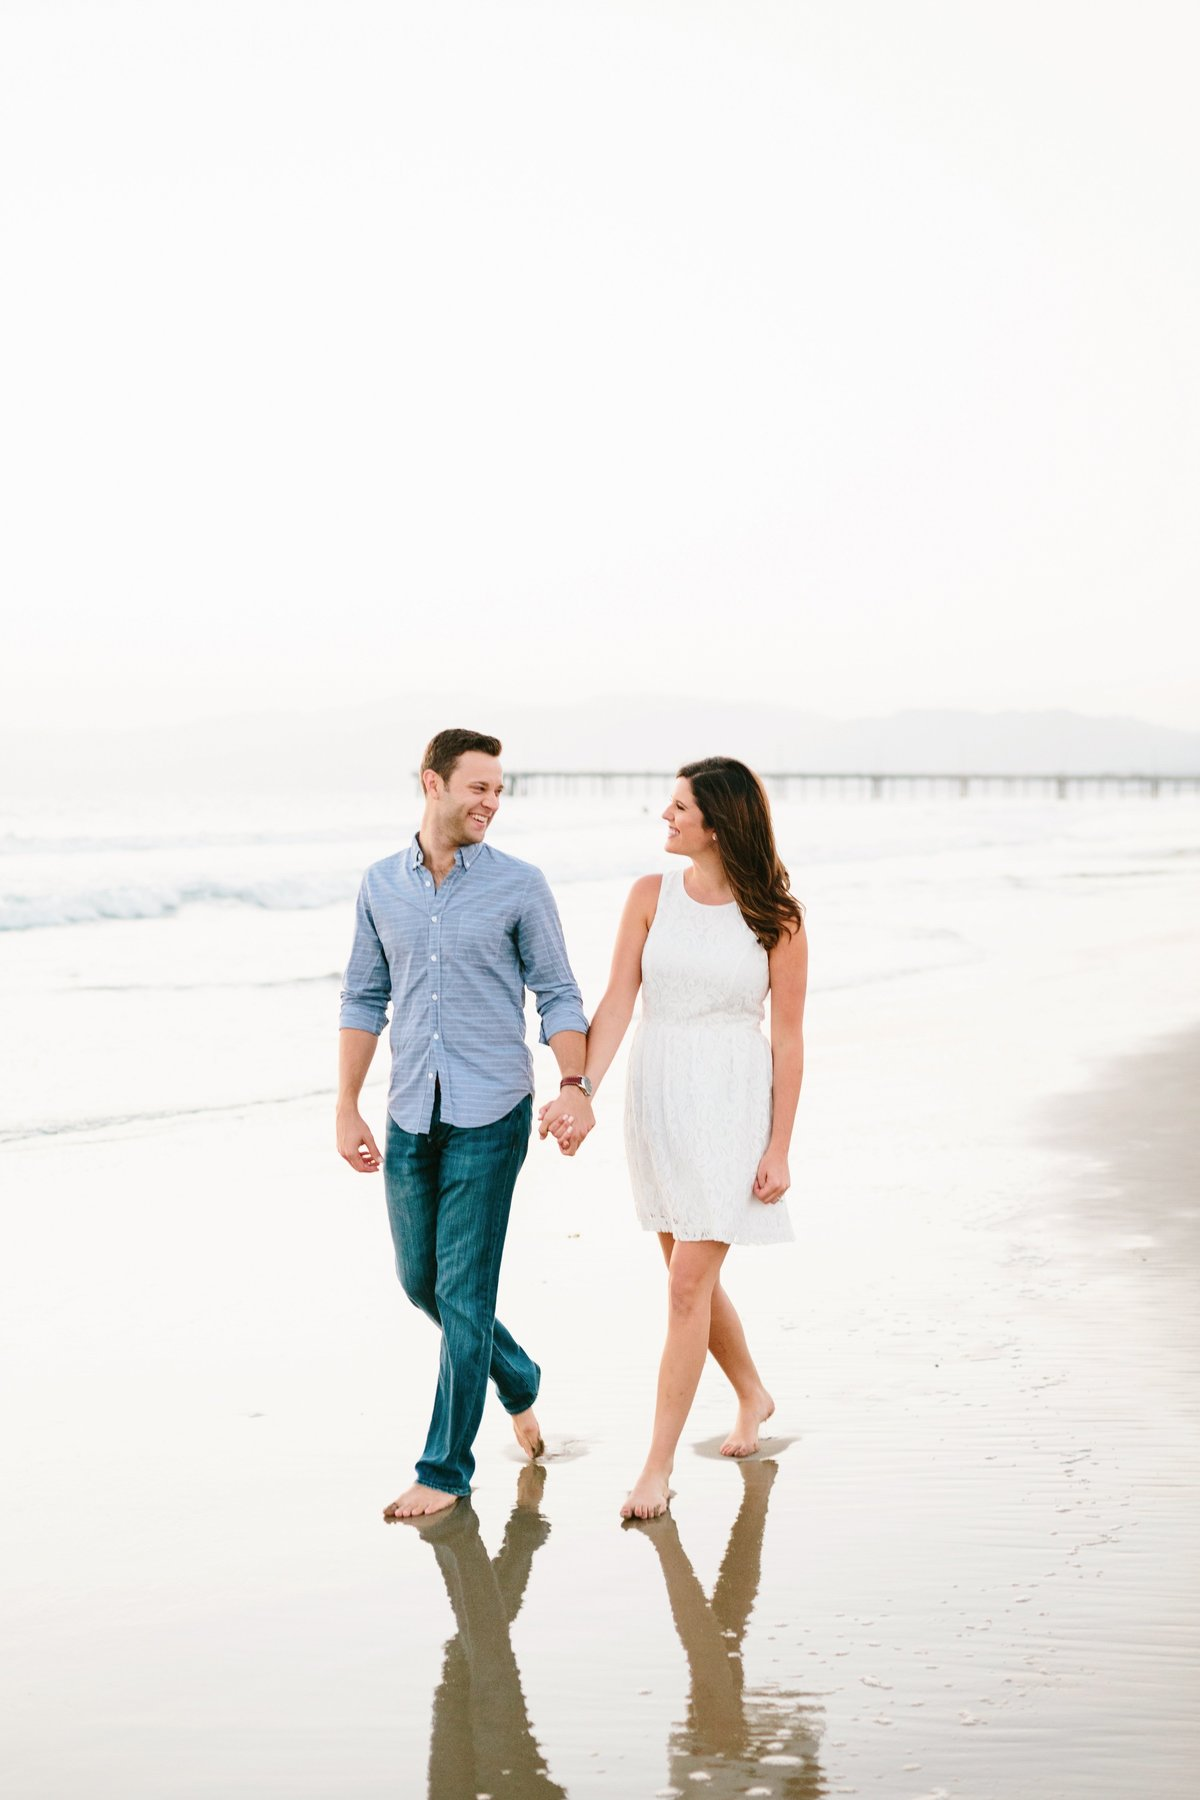 Best California Engagement Photographer-Jodee Debes Photography-152